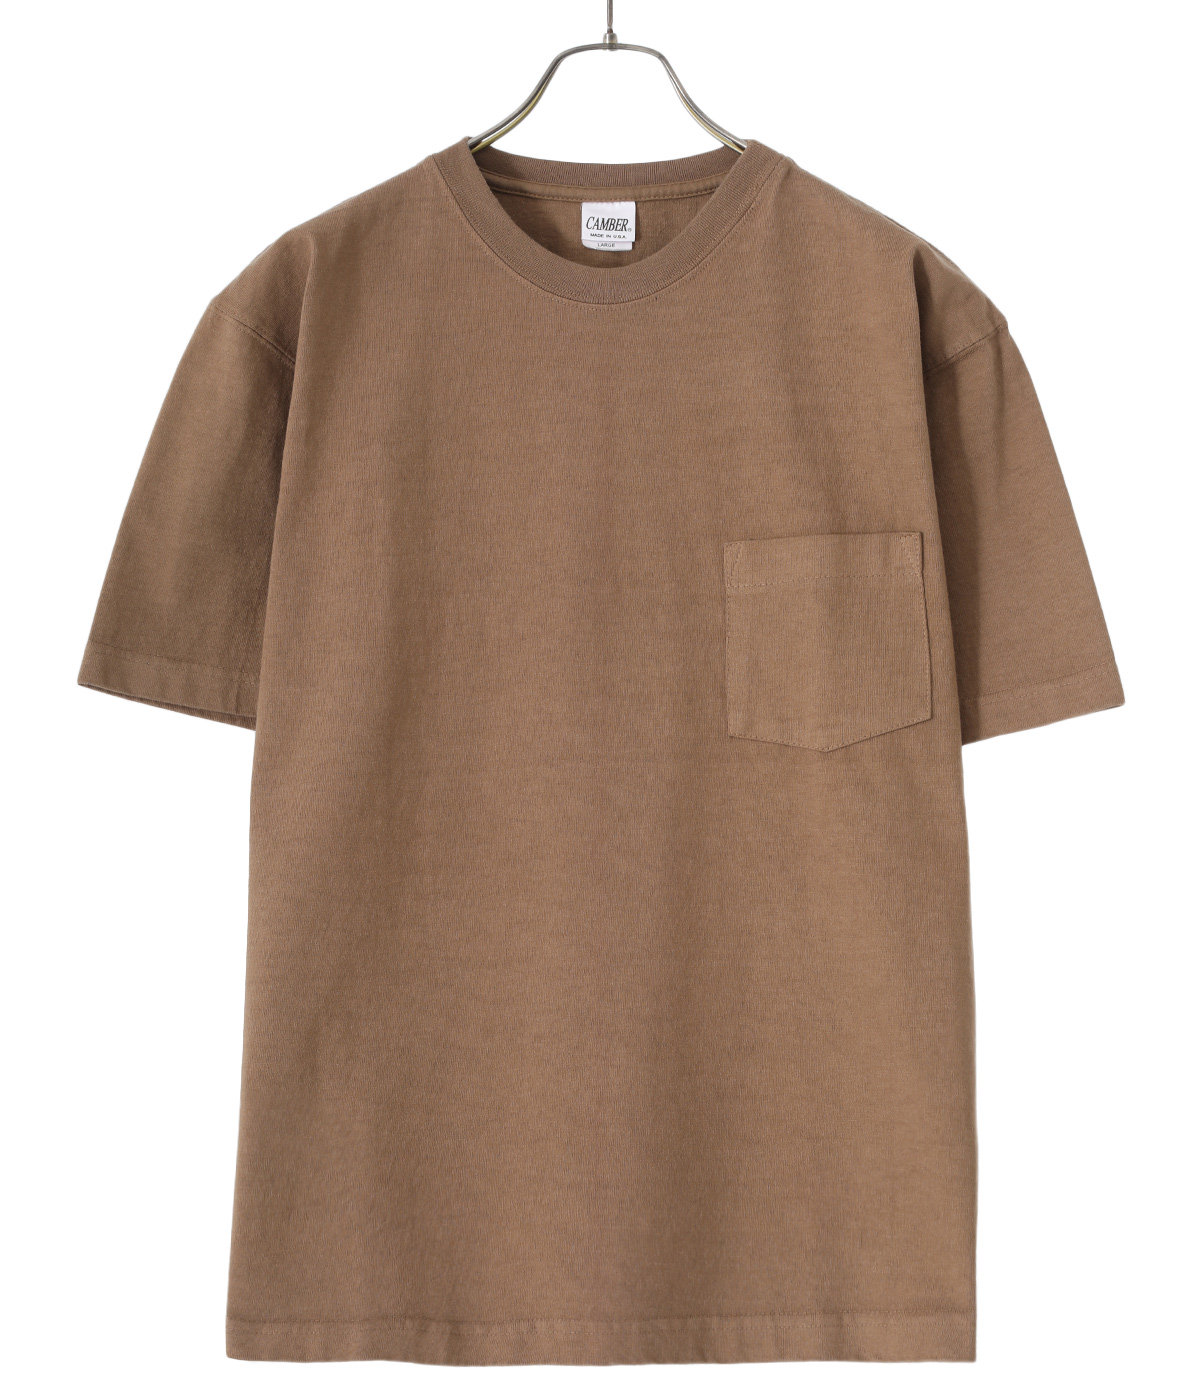 【別注】8oz MAX WEIGHT POCKET T-SHIRT(S、M、L、XLサイズ)